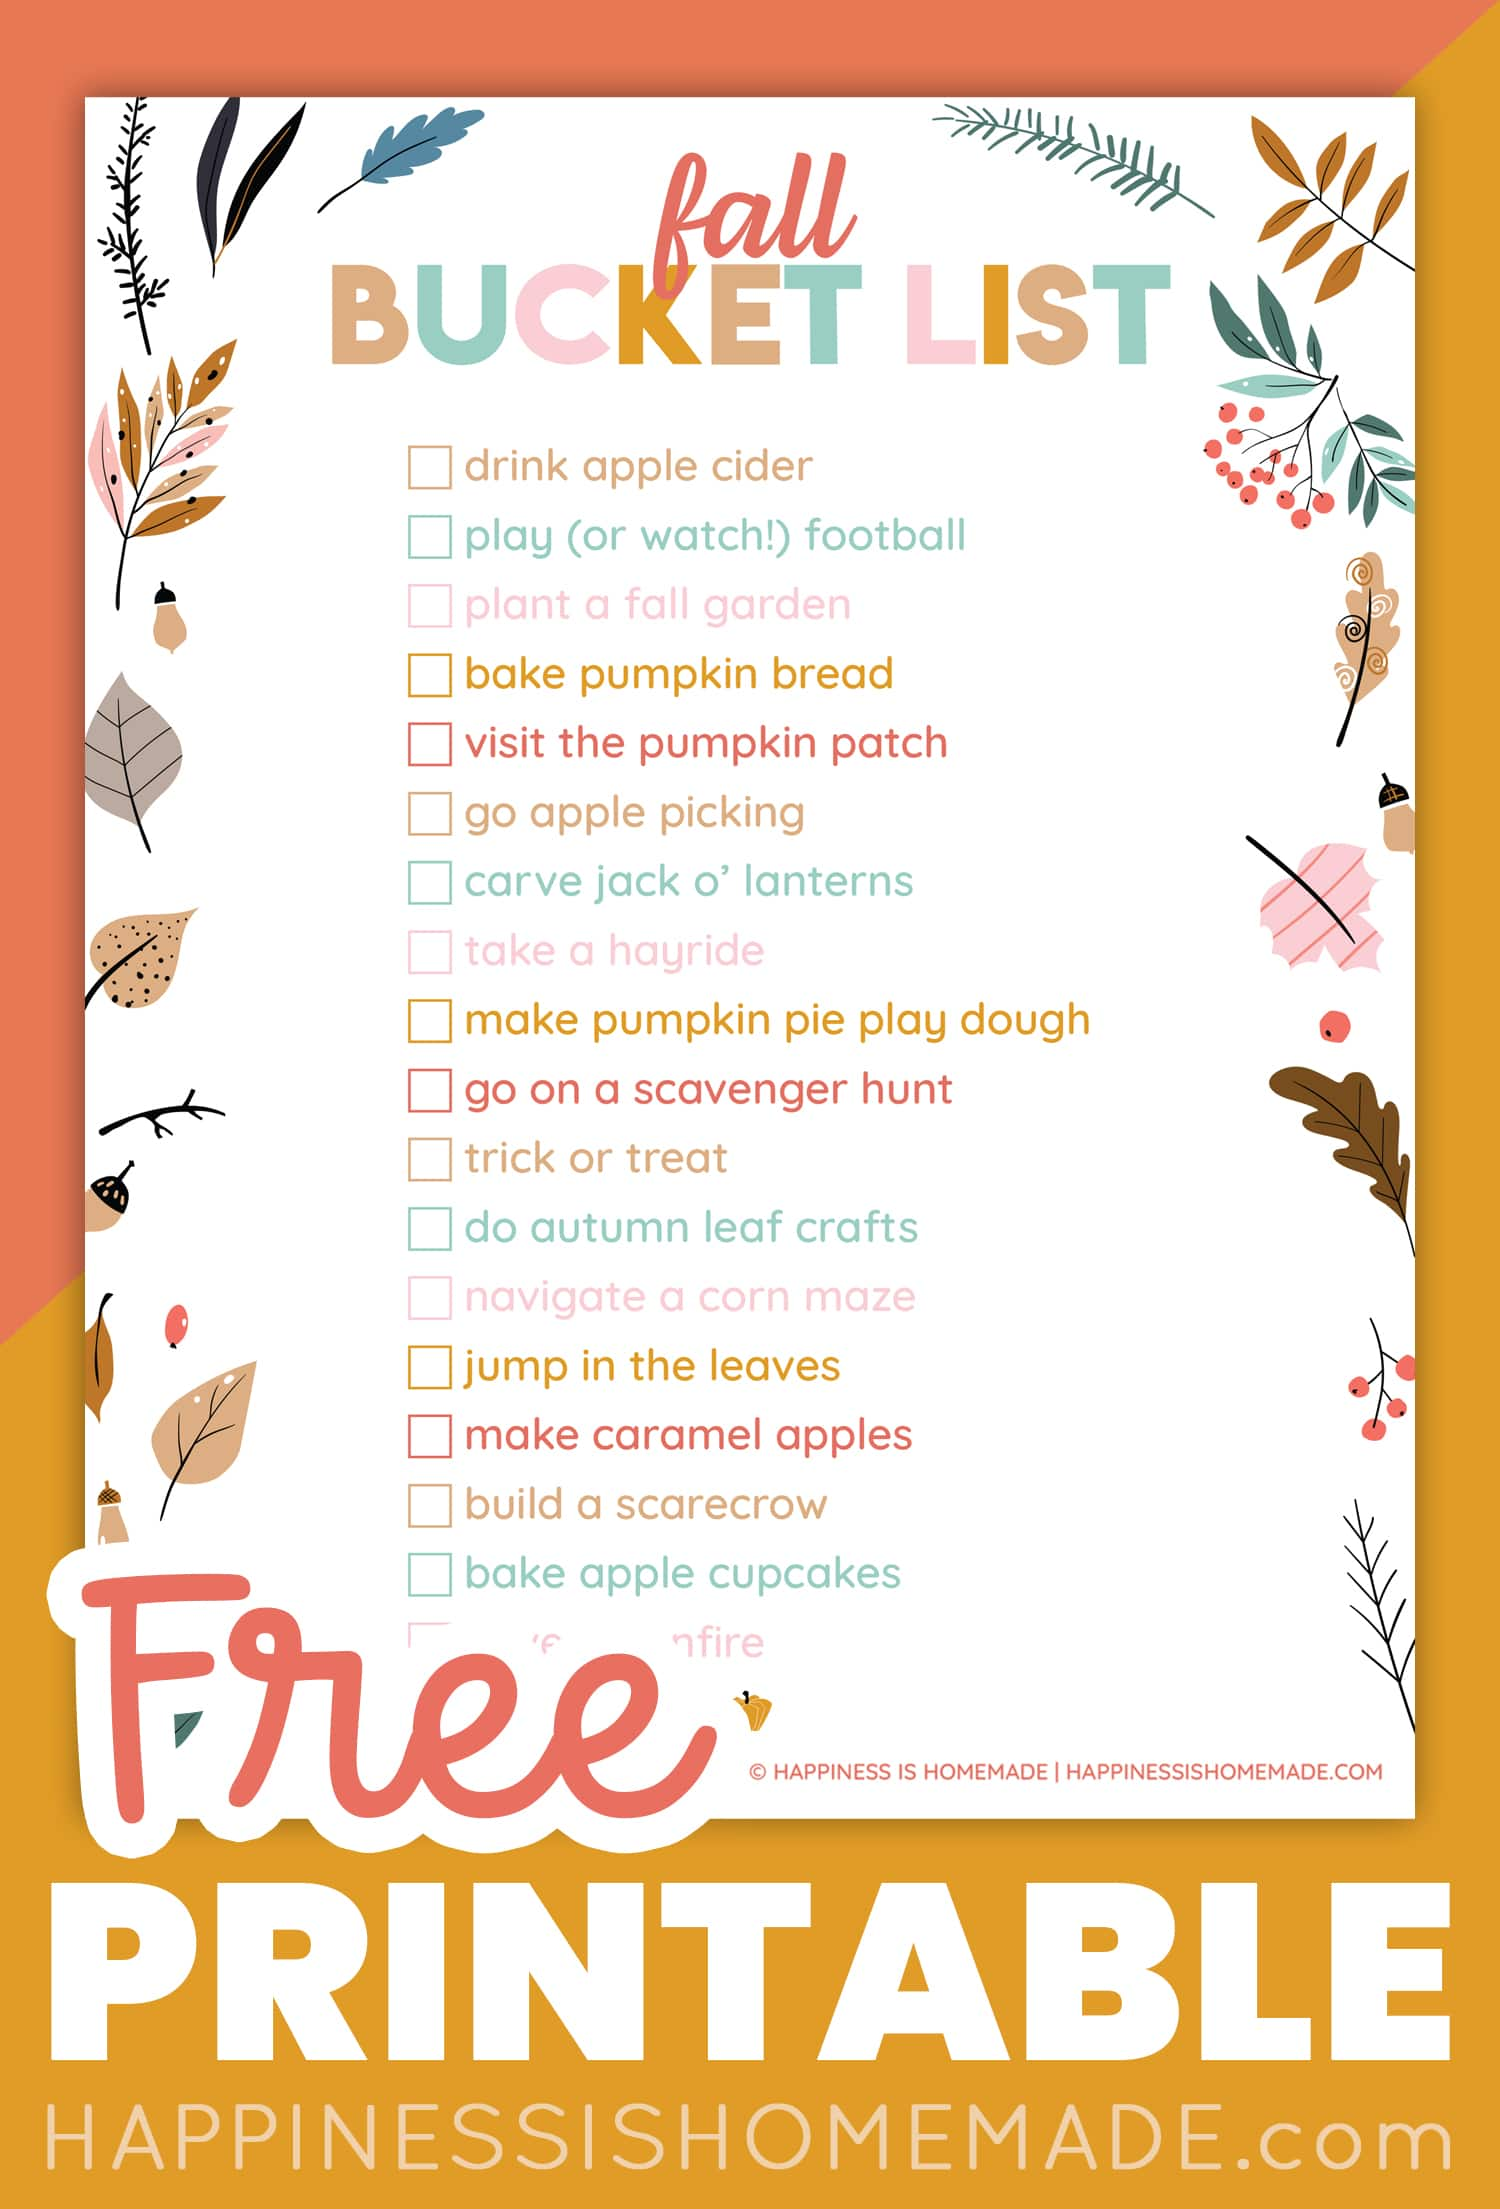 Printable Fall Bucket List Ideas